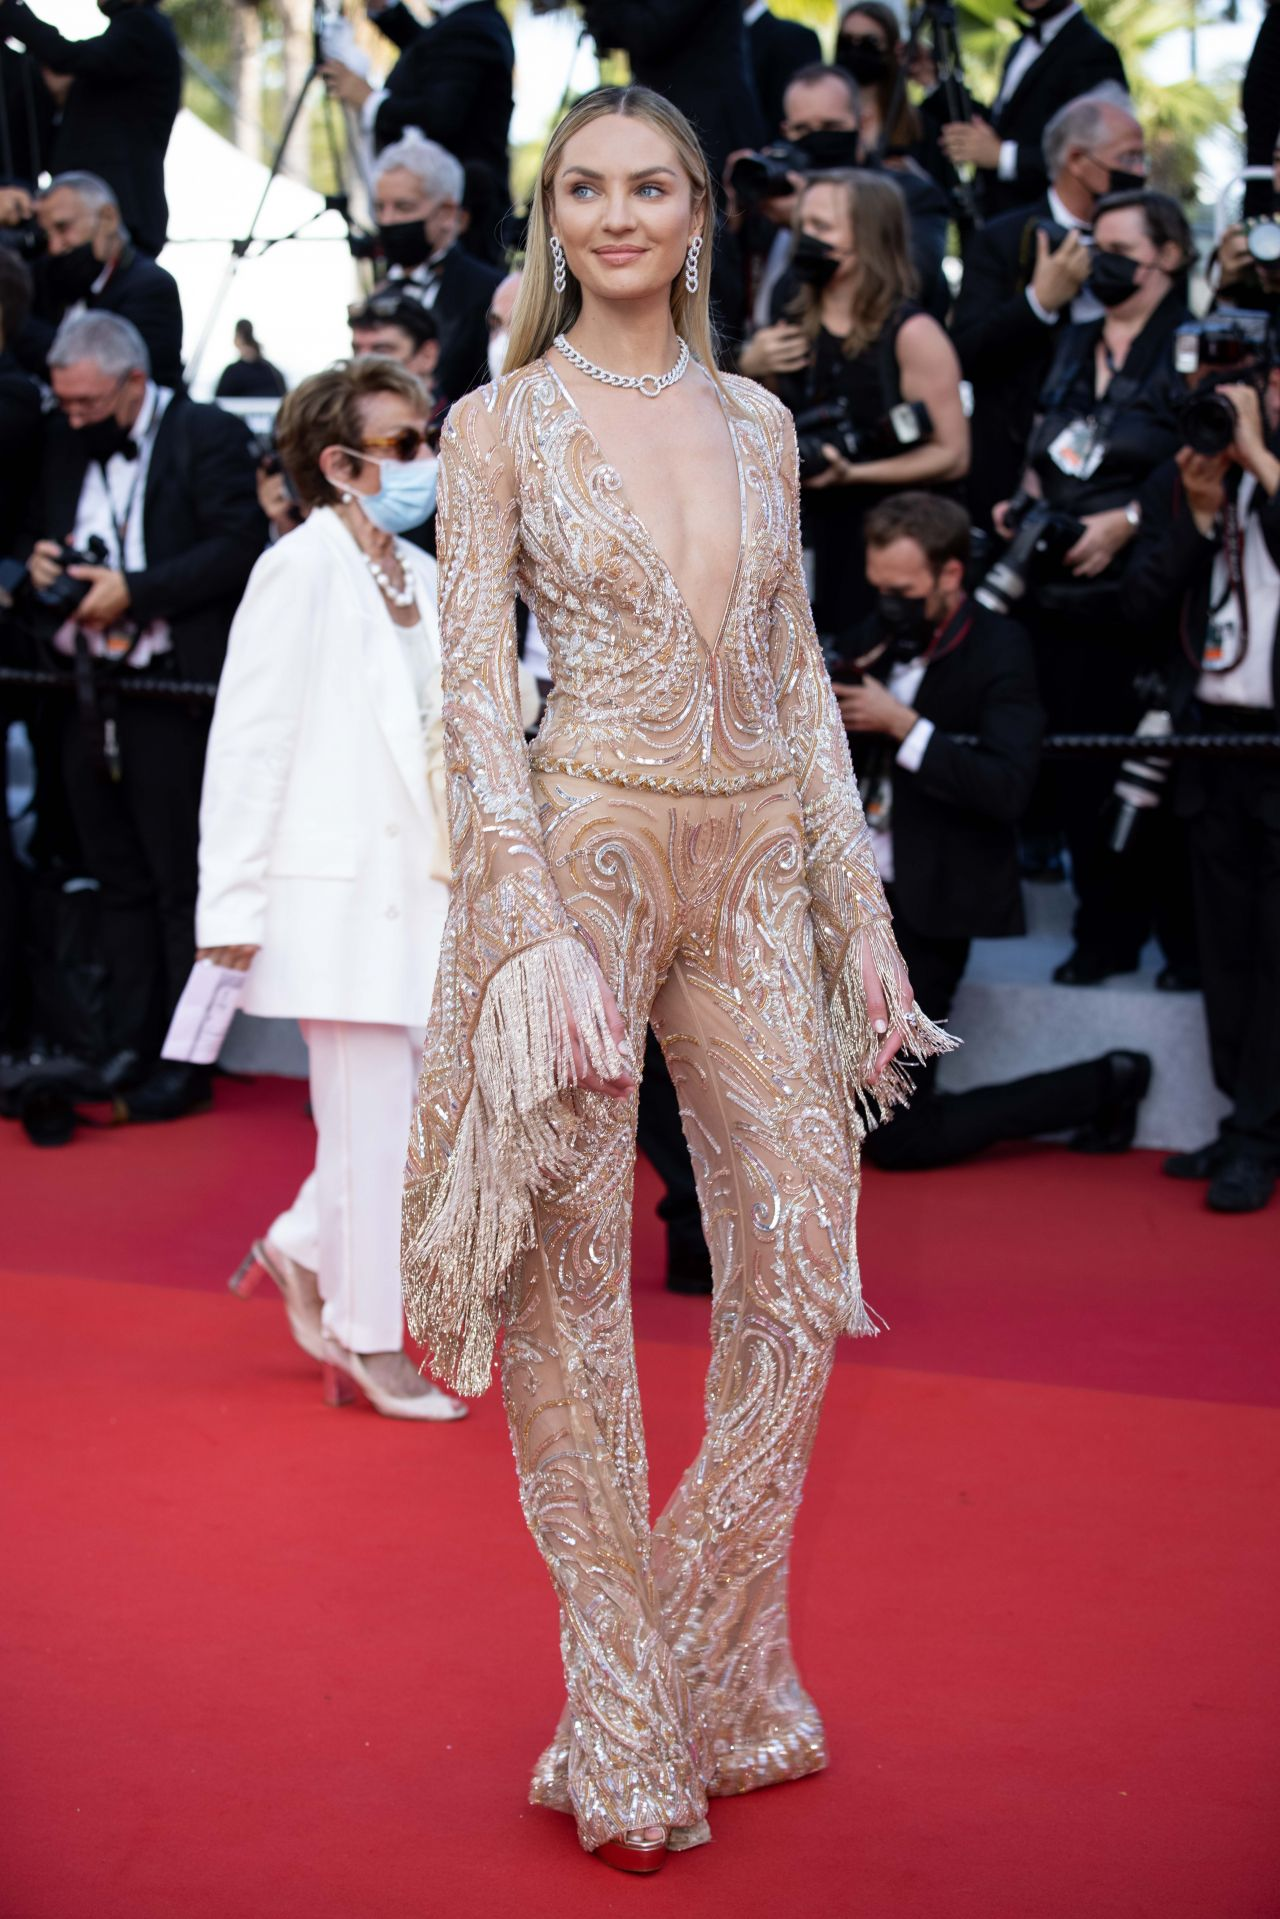 Candice Swanepoel – 74th Annual Cannes Film Festival Opening Ceremony Red Carpet • CelebMafia